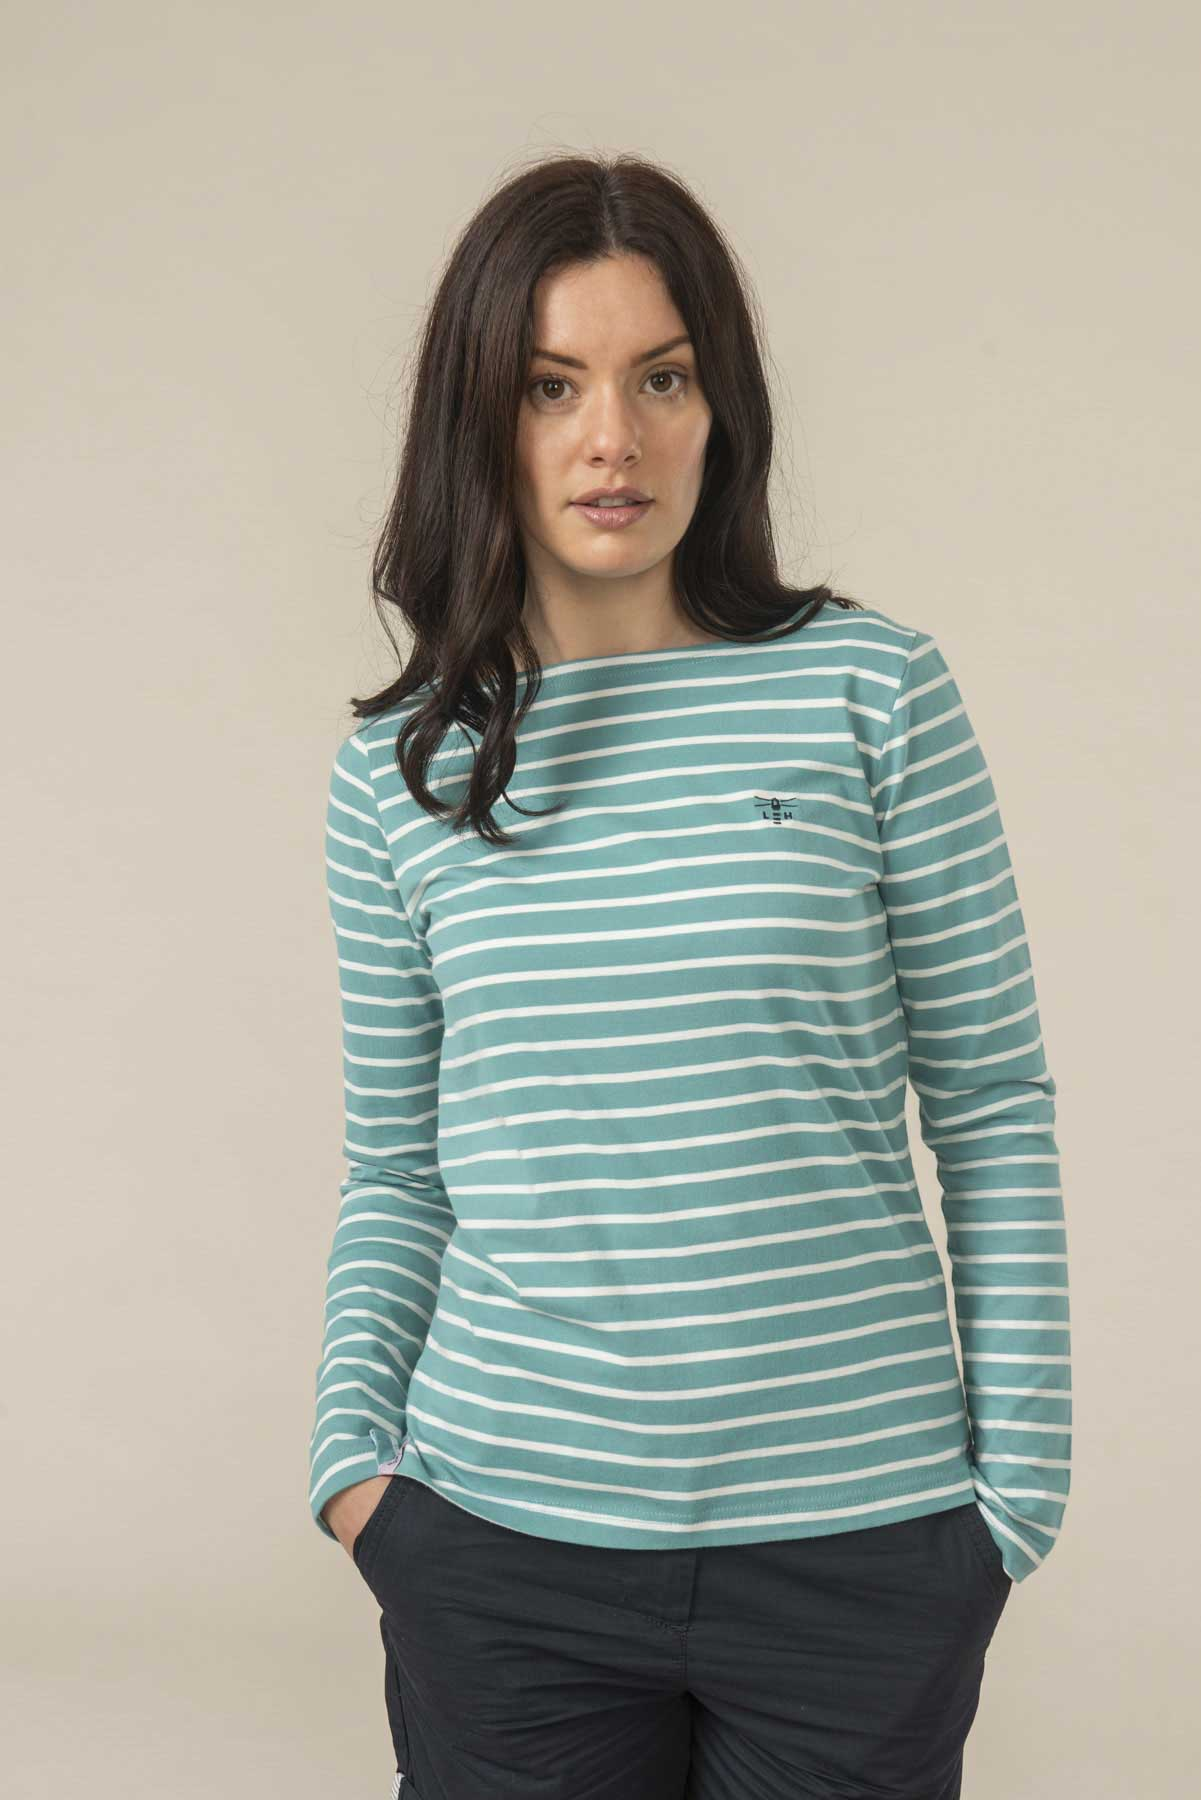 Causeway women's long sleeve top in teal stripe